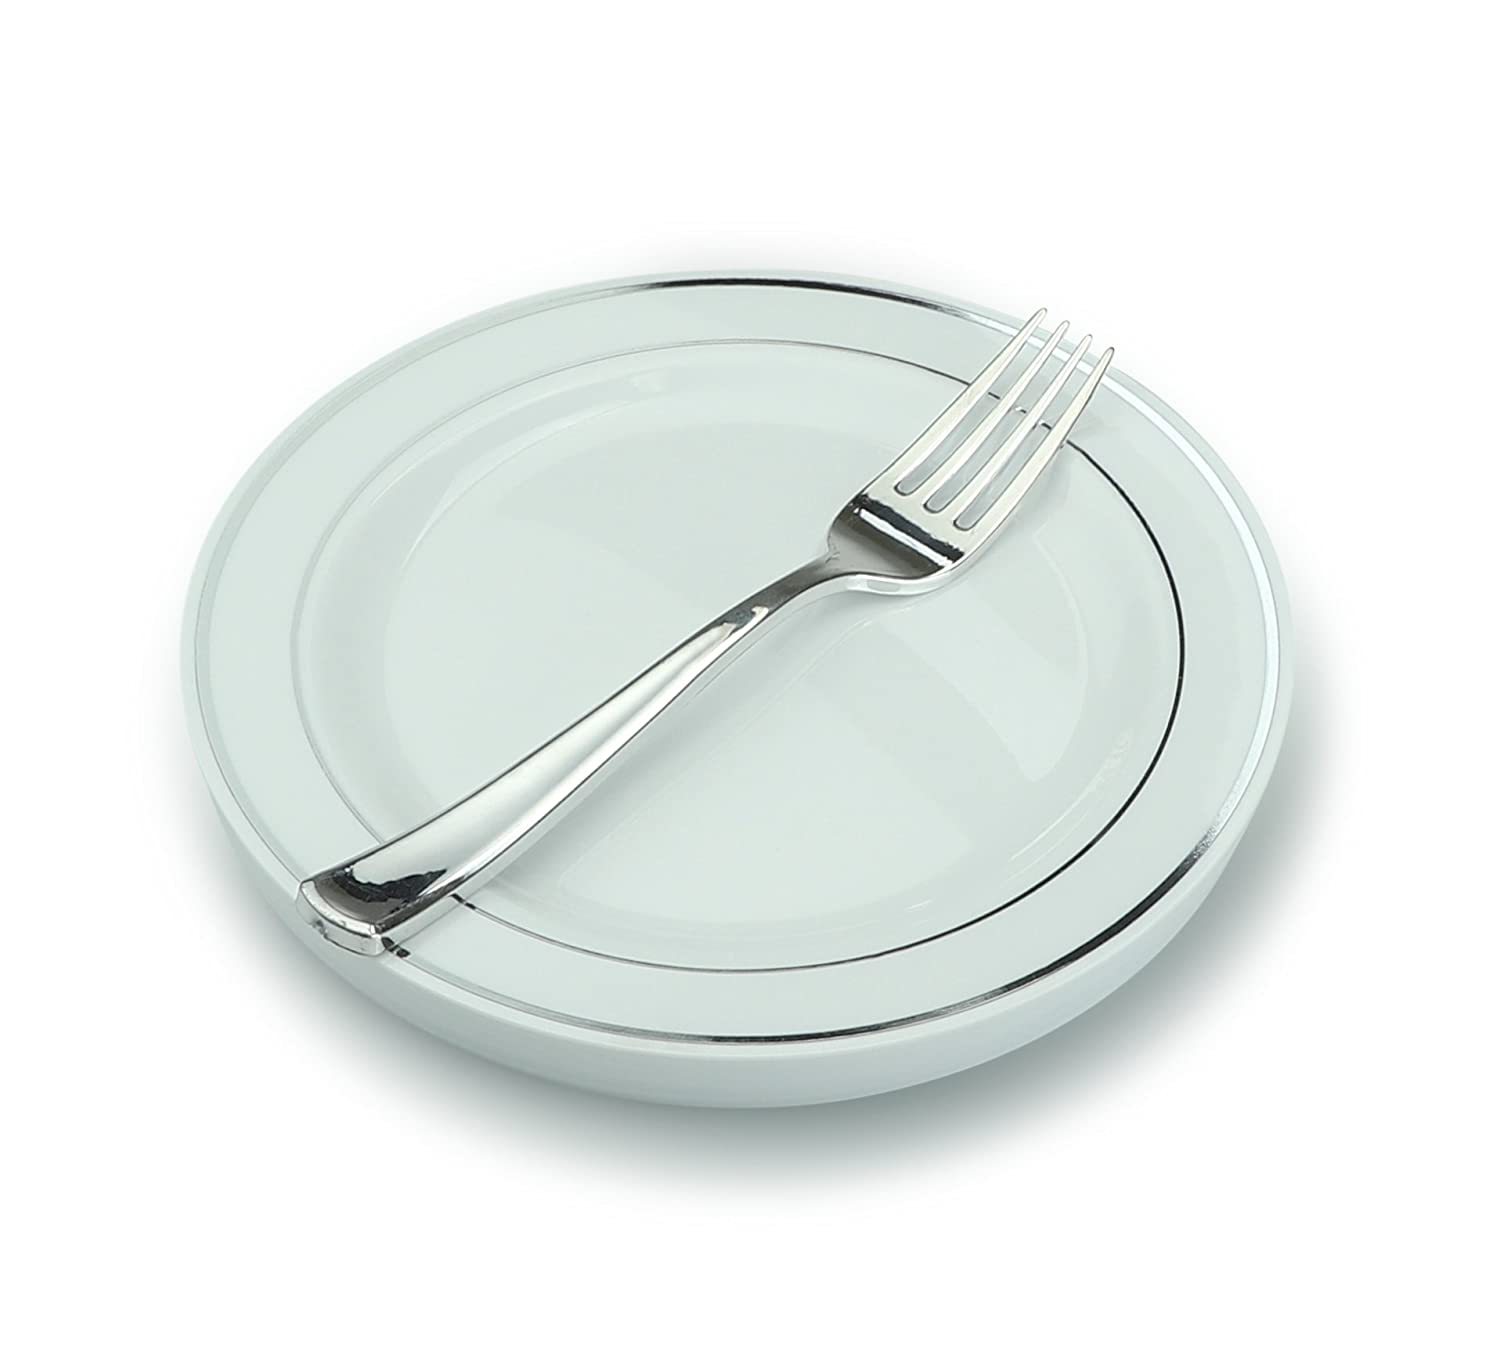 """"""" OCCASIONS"""" Wedding Party Heavyweight Disposable Plastic 7.5'' Silver Rim Plates + Forks set (Appetizer/Dessert Setting, 60 Settings)"""